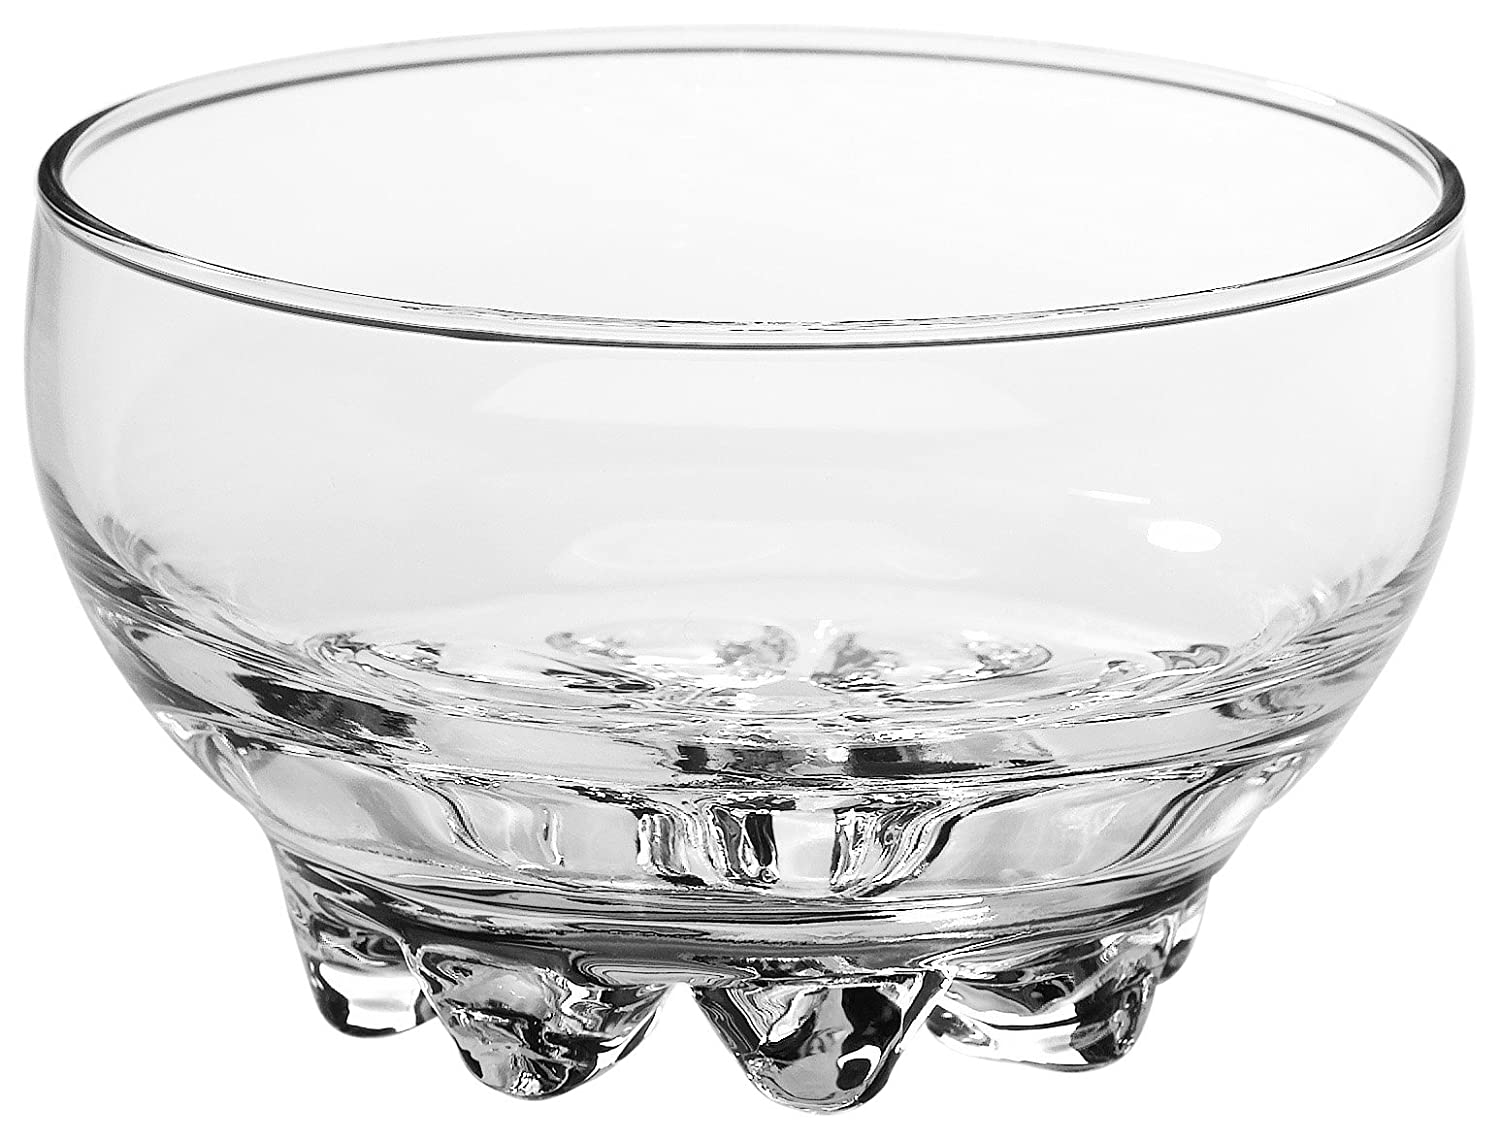 Bormioli Rocco Galassia Shot Glasses – Gift Set Of 6 Drinking Shot Cups With Elegant Curved Shape, Heavy Sham & Interlocking Feet – Short Shooter Tumblers For Liquors & Spirits (2.25oz) 323301G21021990